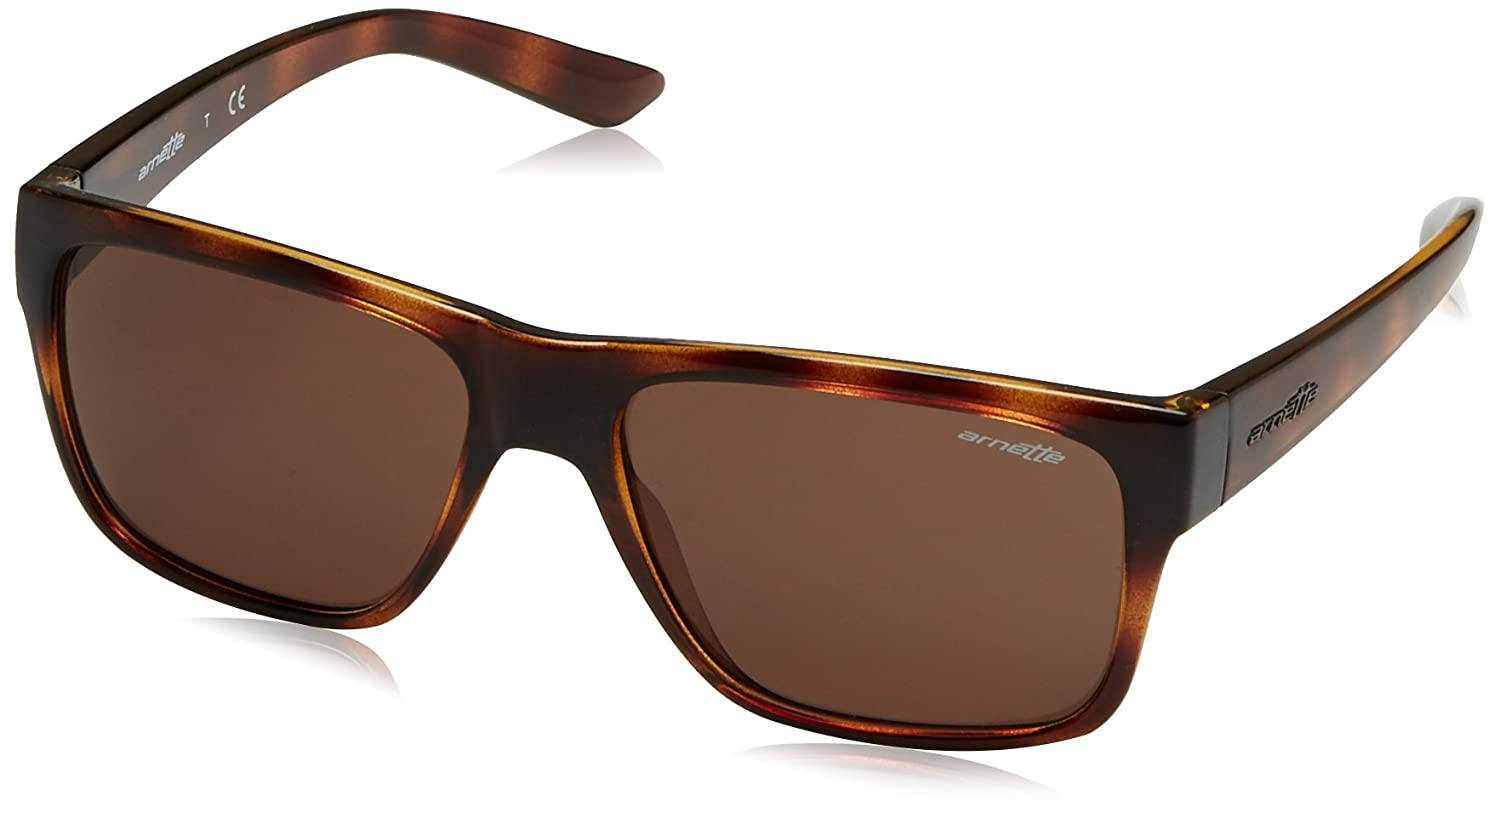 Arnette Men's Reserve Square Sunglasses, Dark Havana, 57 mm 0AN4226 MOD.4226SUN_237973-57